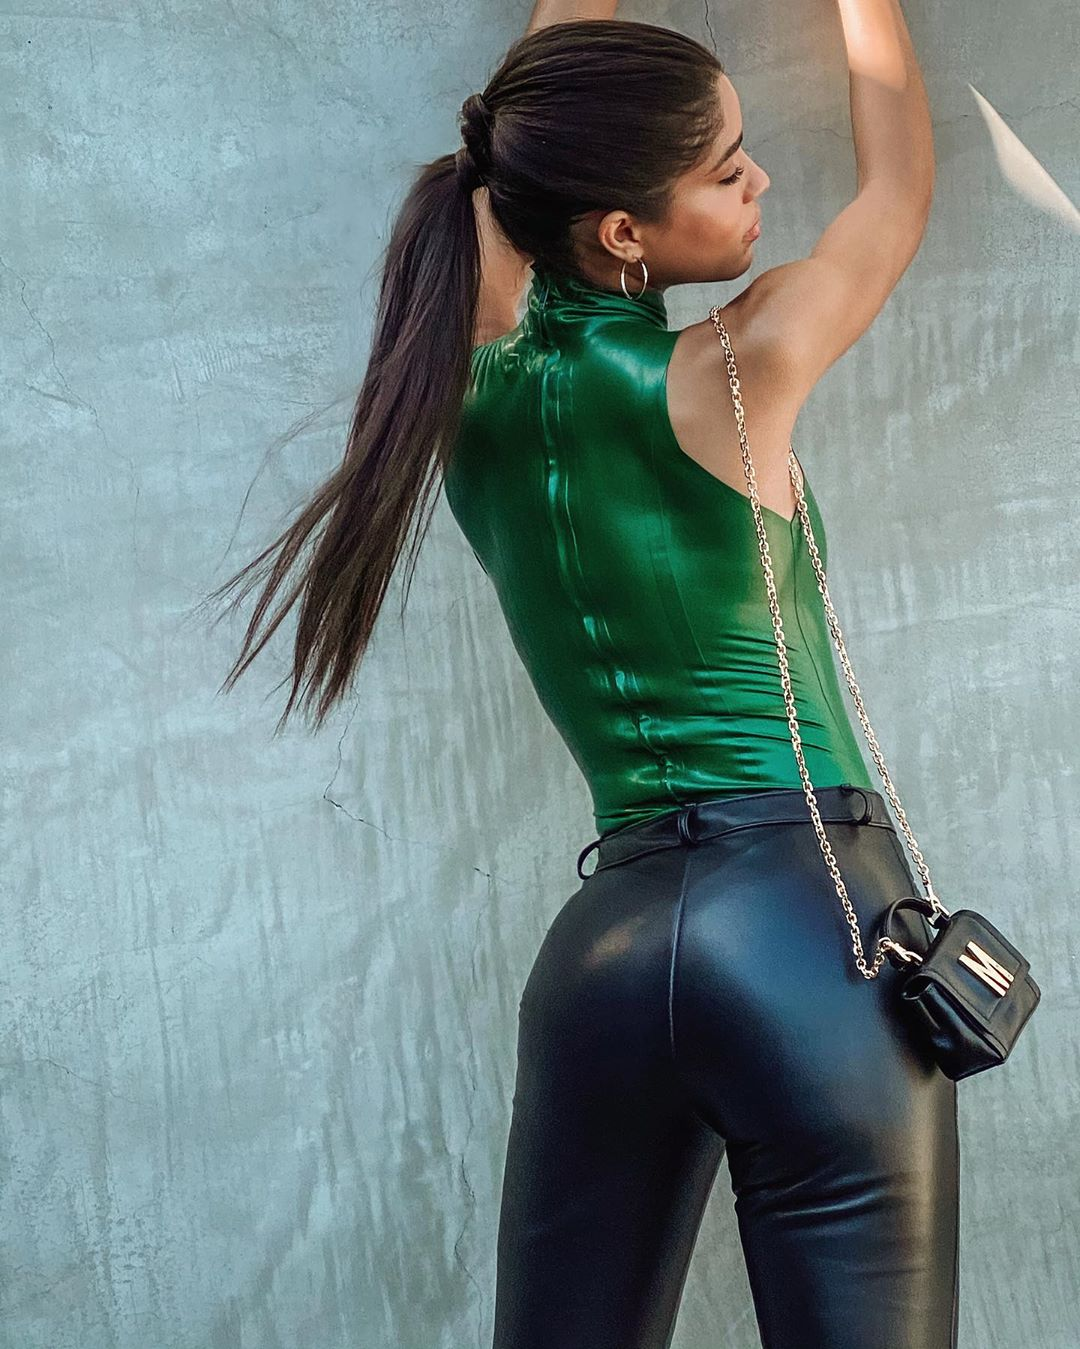 Yovanna Ventura wearing strappy black leather sandals with high heel